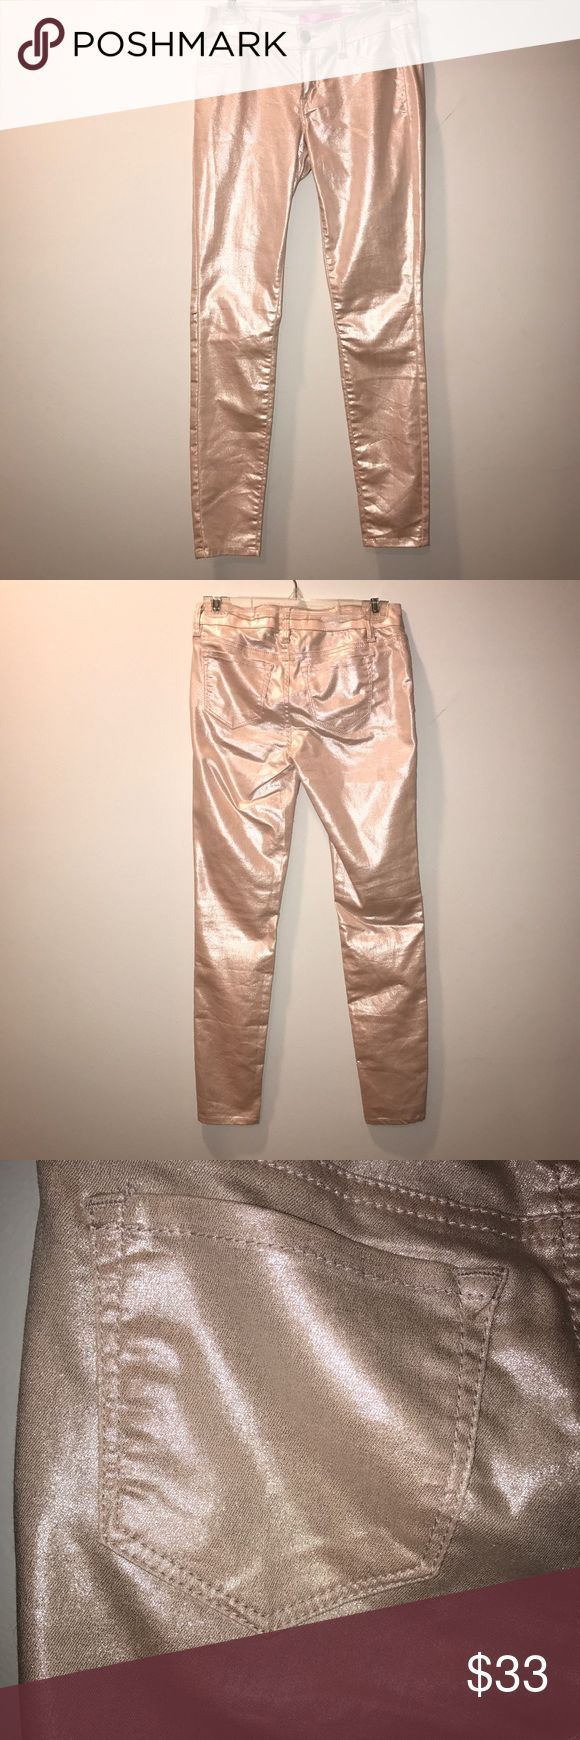 Shiny Light Pink Tight Skinny Low-cut Pants These are very pretty light pink pants that look shiny/sparkly.  They are tight skinny and low cut at the waist. Pants Skinny